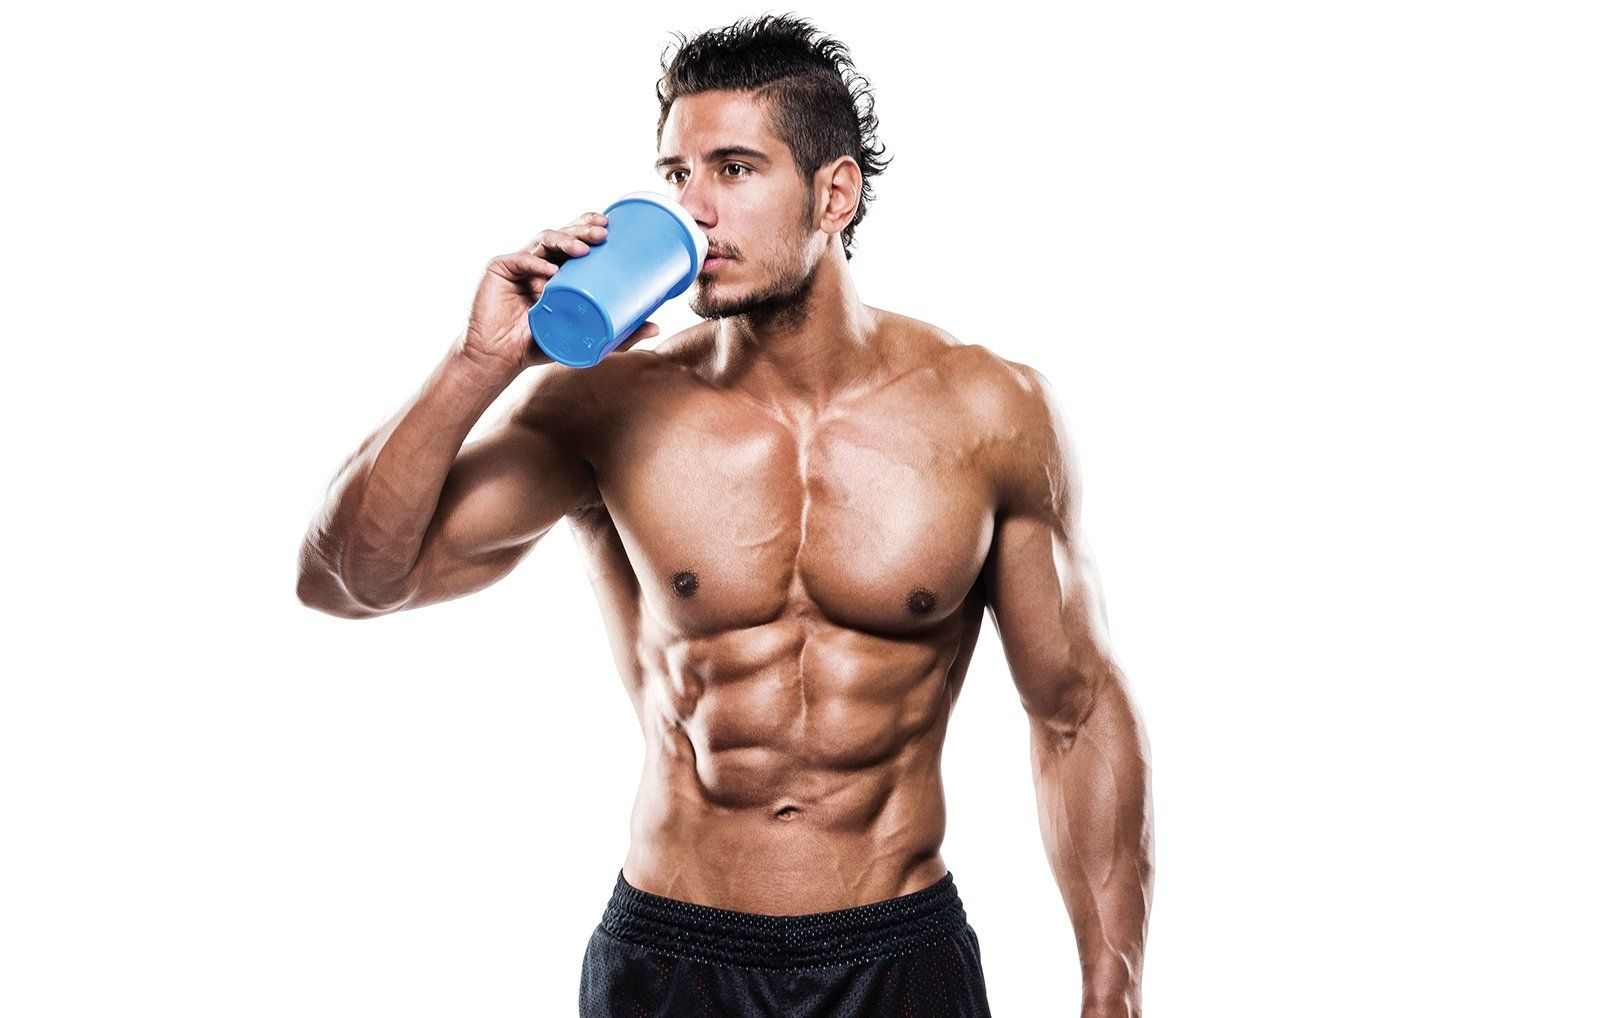 Do muscle building supplements affect sex